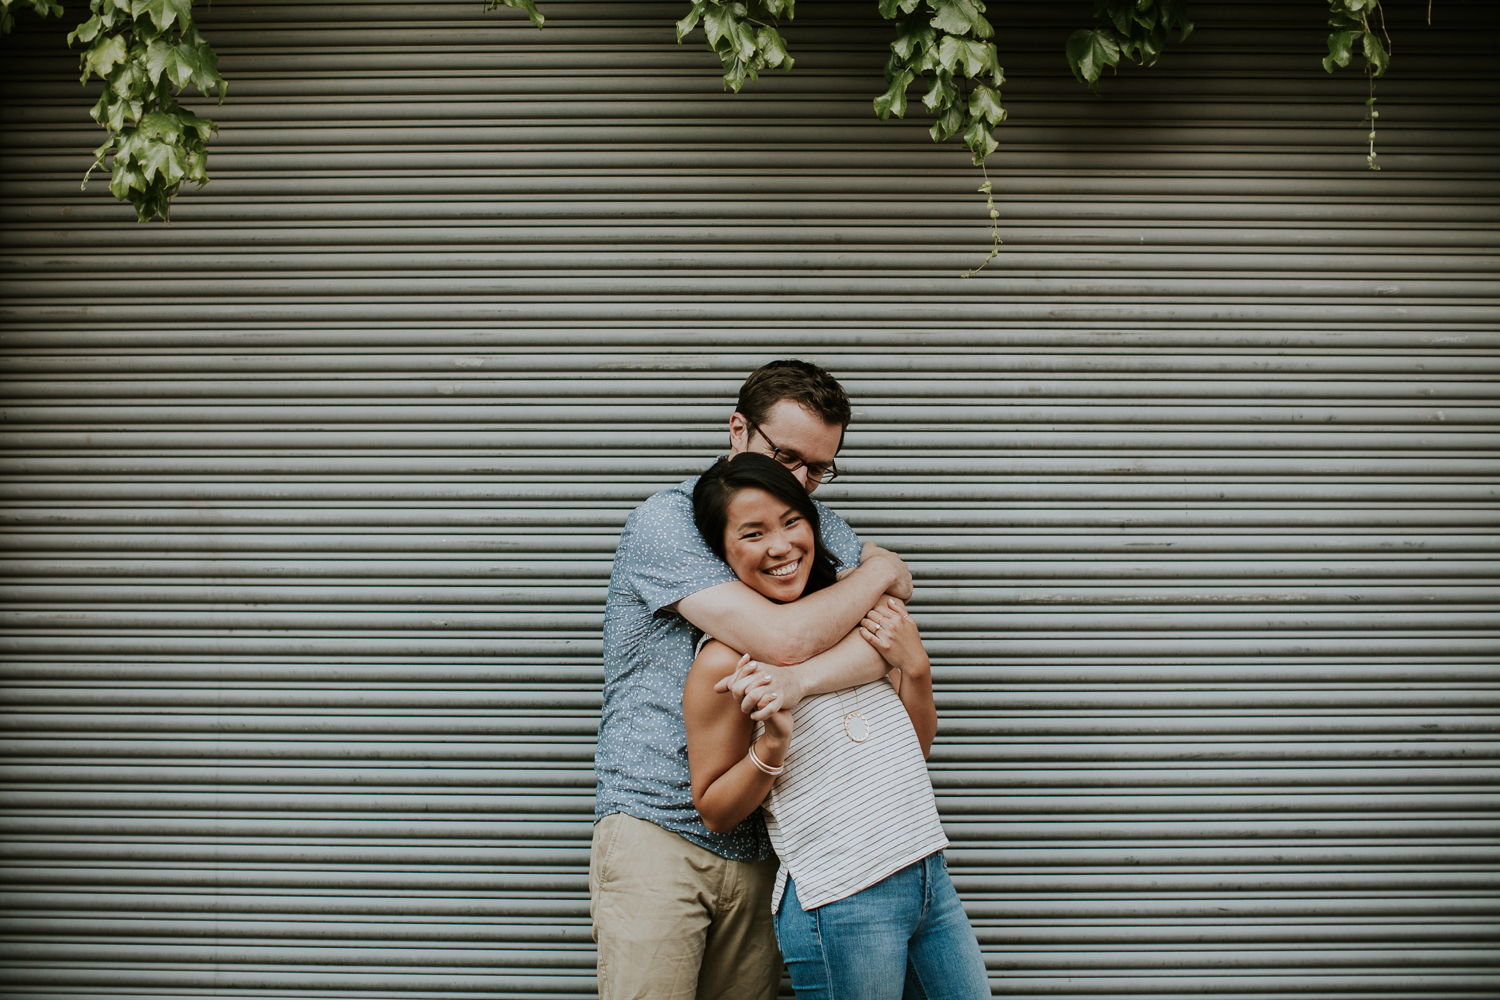 washington_dc_blagden_alley_engagement_photographer-24.jpg